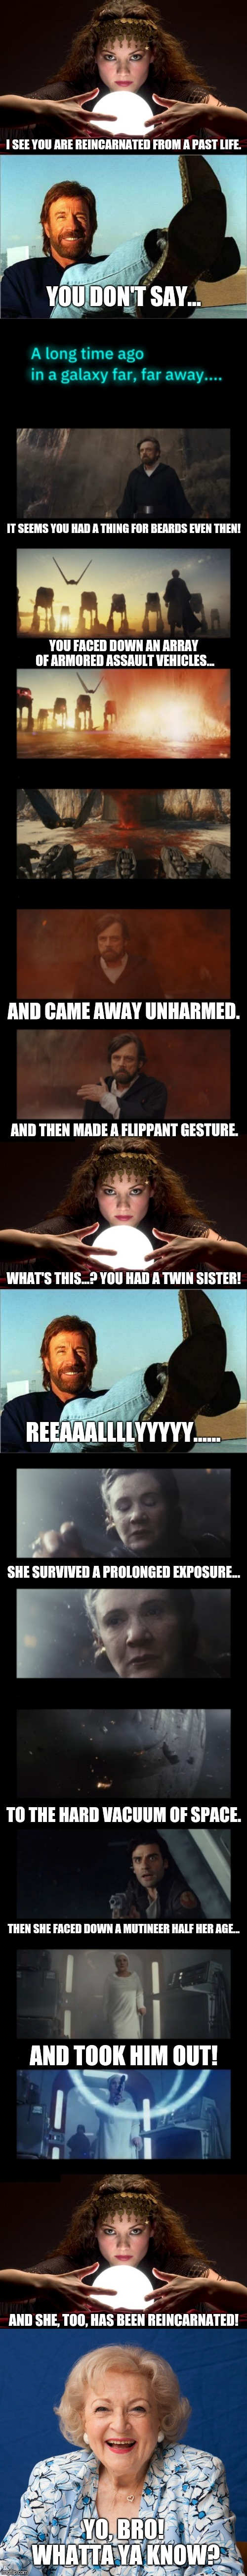 Hey, I was as sceptical as Chuck until I saw the movie! May the Norris be White you! | I SEE YOU ARE REINCARNATED FROM A PAST LIFE. YO, BRO! WHATTA YA KNOW? YOU DON'T SAY... IT SEEMS YOU HAD A THING FOR BEARDS EVEN THEN! YOU FA | image tagged in chuck norris says,psychic with crystal ball,betty white,star wars the last jedi,may the force be with you,sceptical skeptical | made w/ Imgflip meme maker